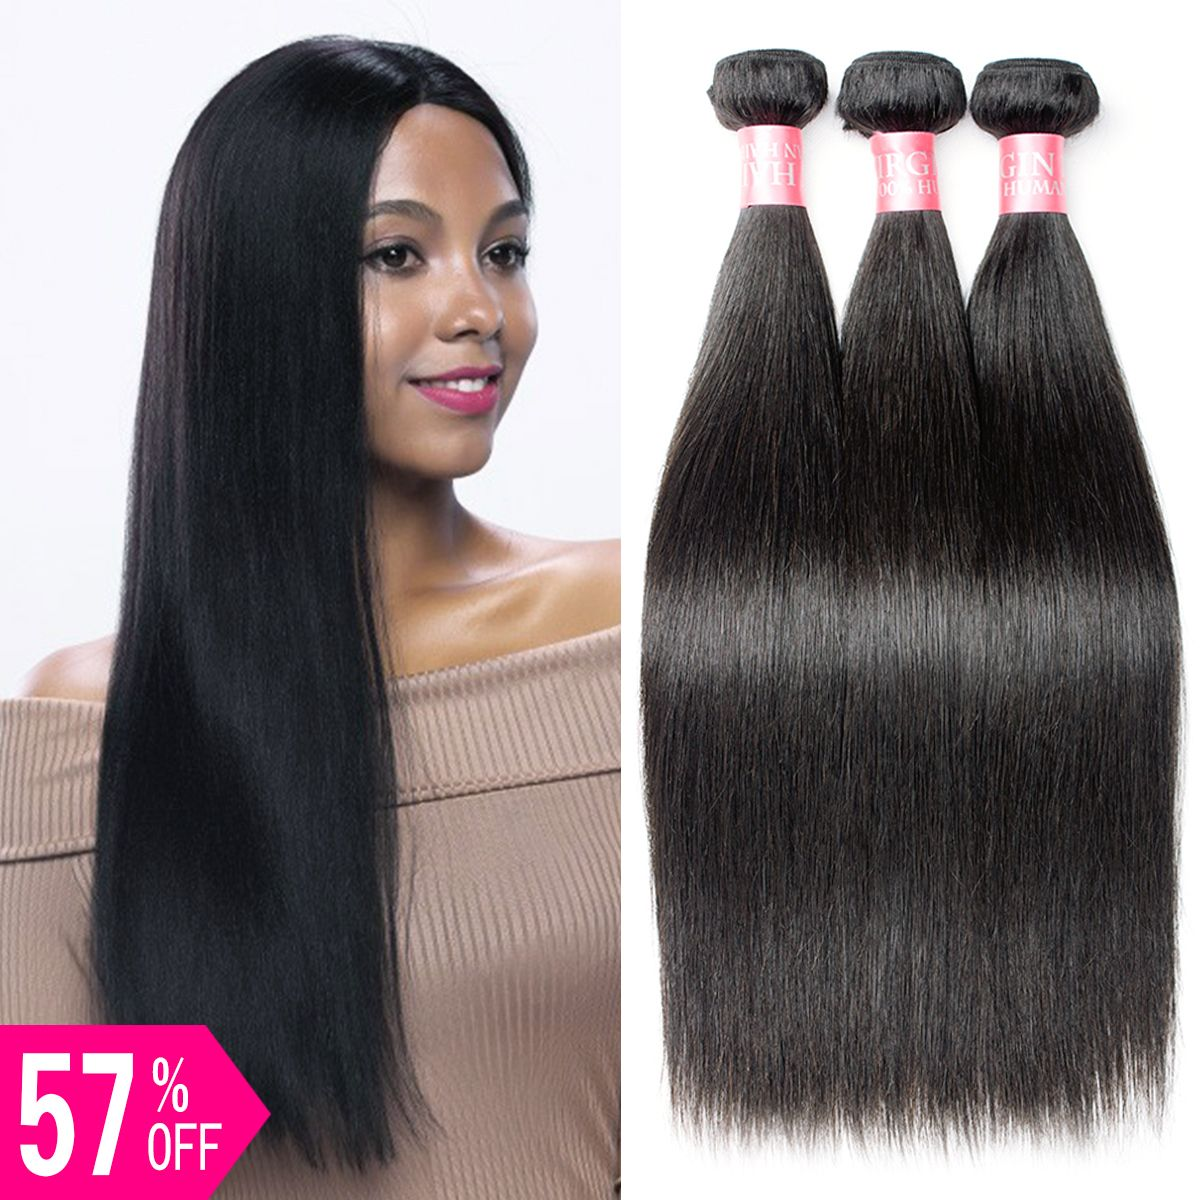 Back to school sale,Up to 57 OFF.100 Unprocessed virgin